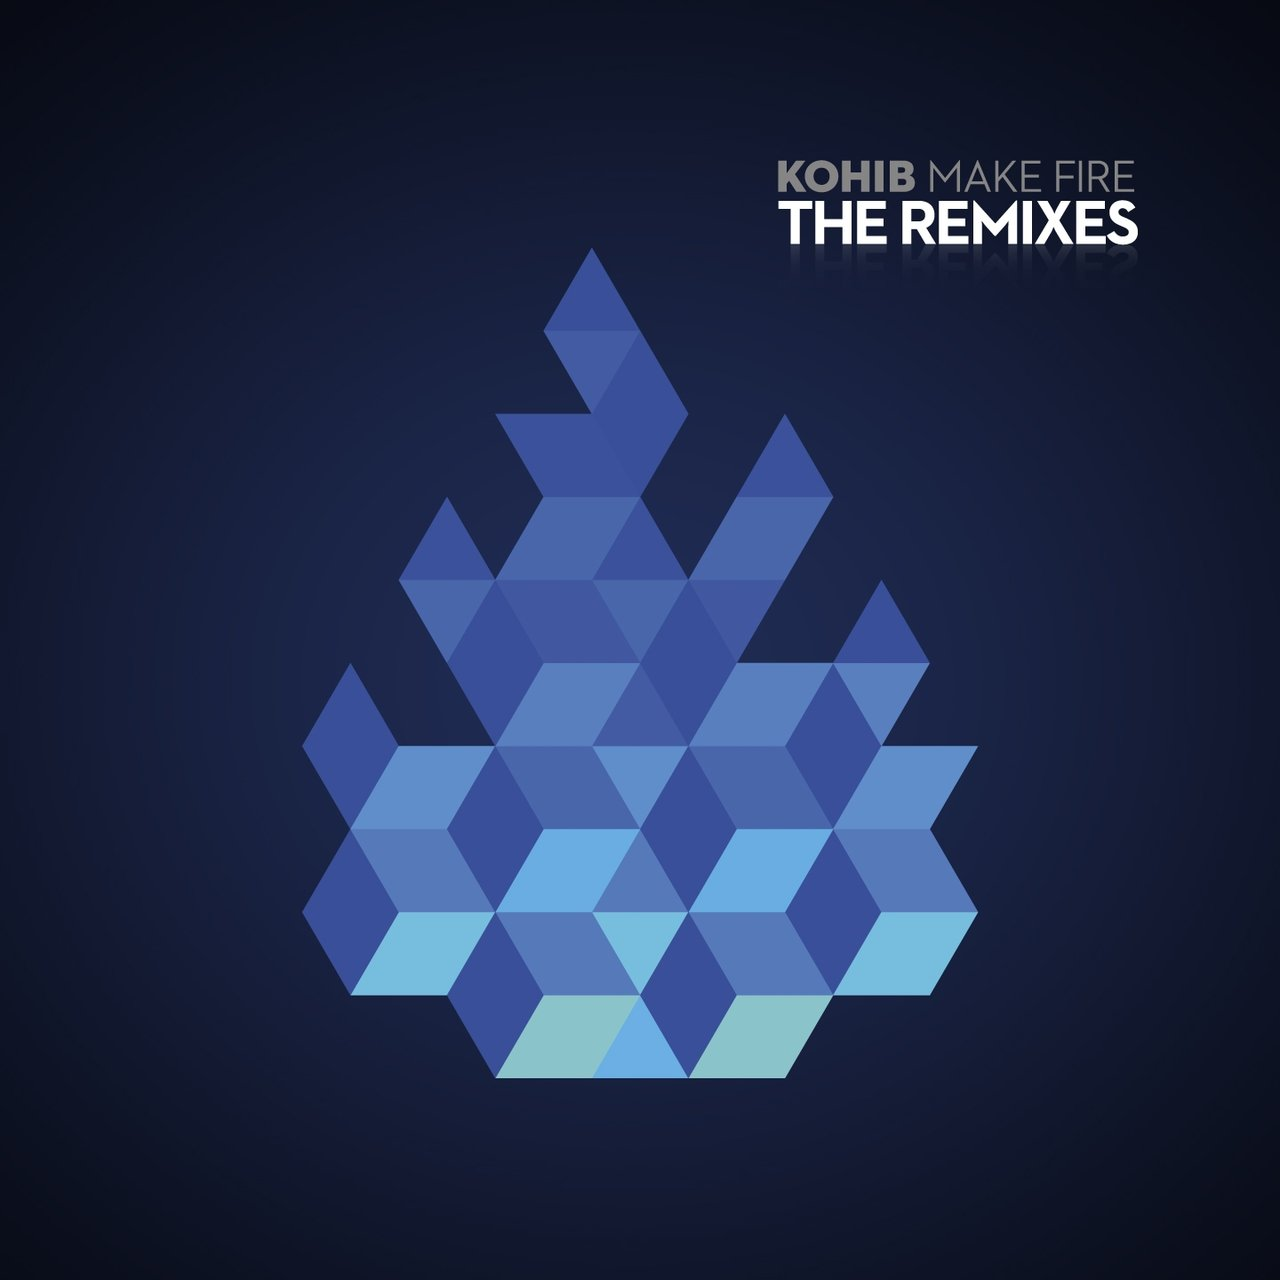 Make Fire - The Remixes